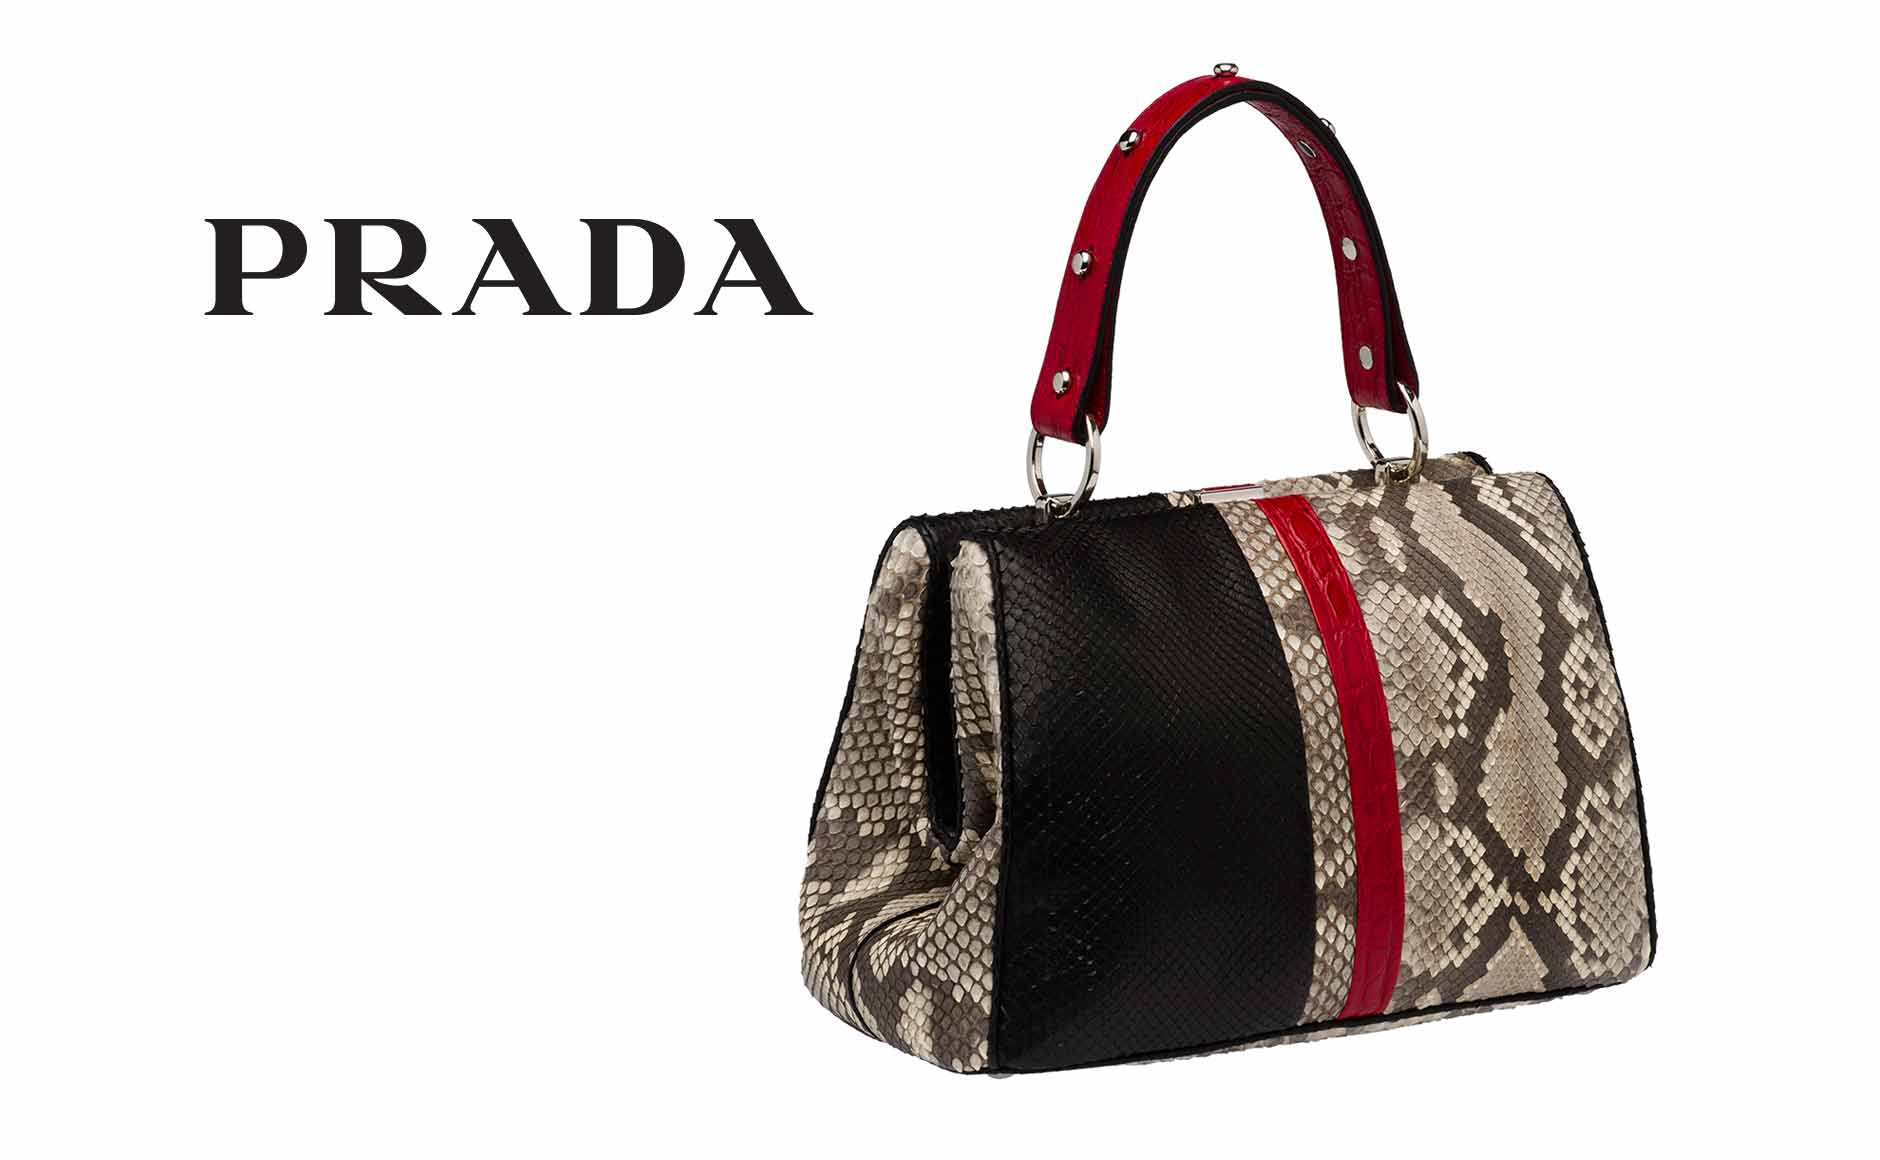 Prada Handbags, Clothing, \u0026amp; Accessories at Neiman Marcus